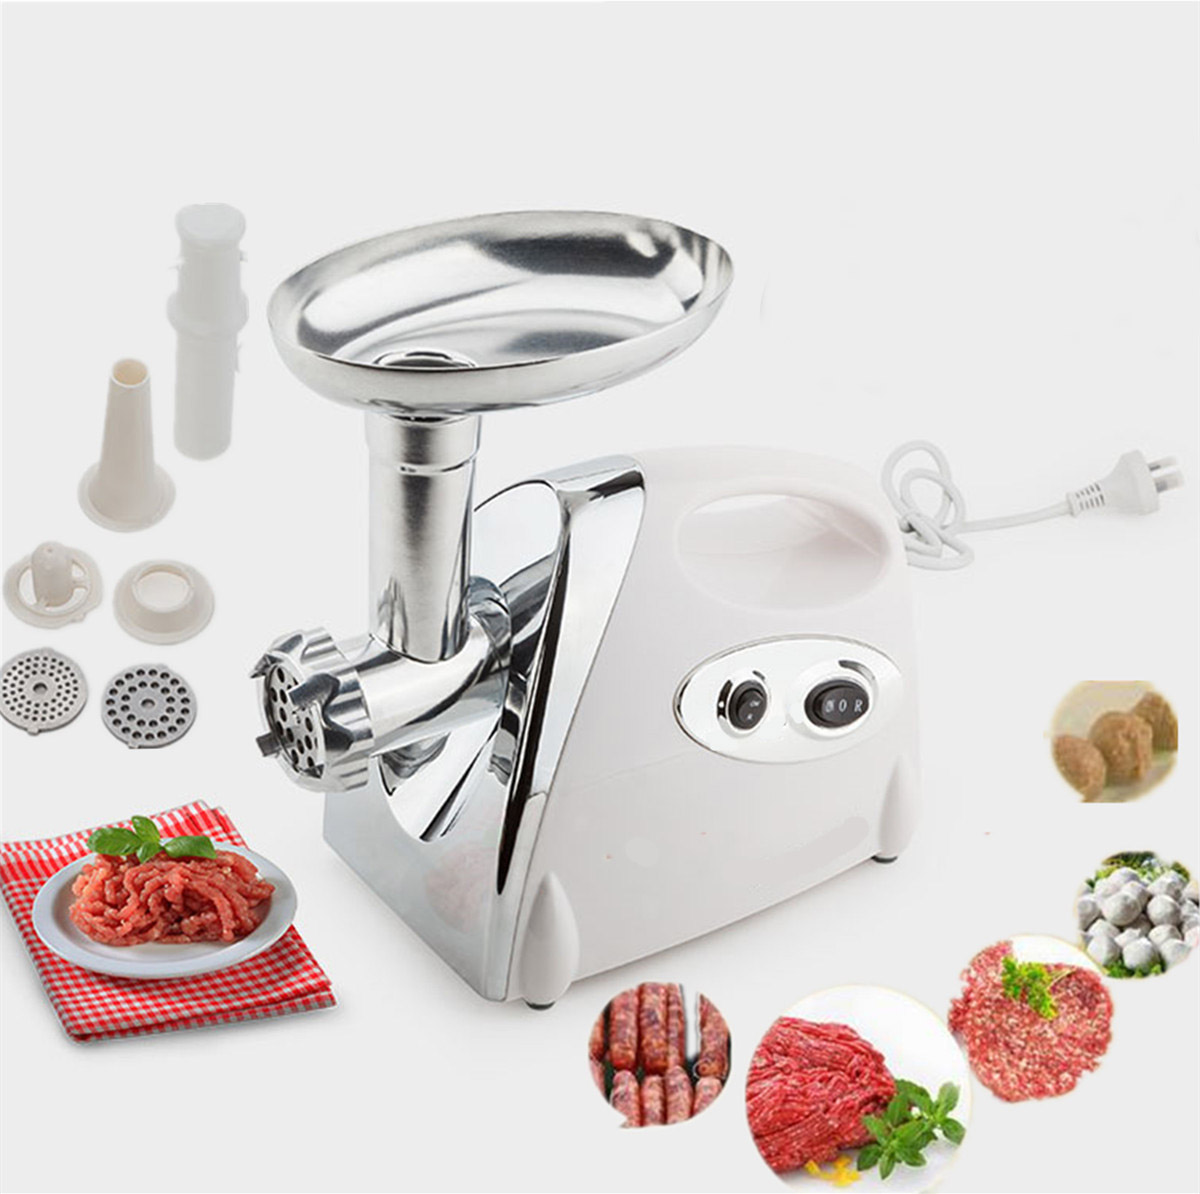 Zimtown New 1300W Electric Meat Grinder Sausage Stuffer Maker Stainless Cutter Home Cooking Tool